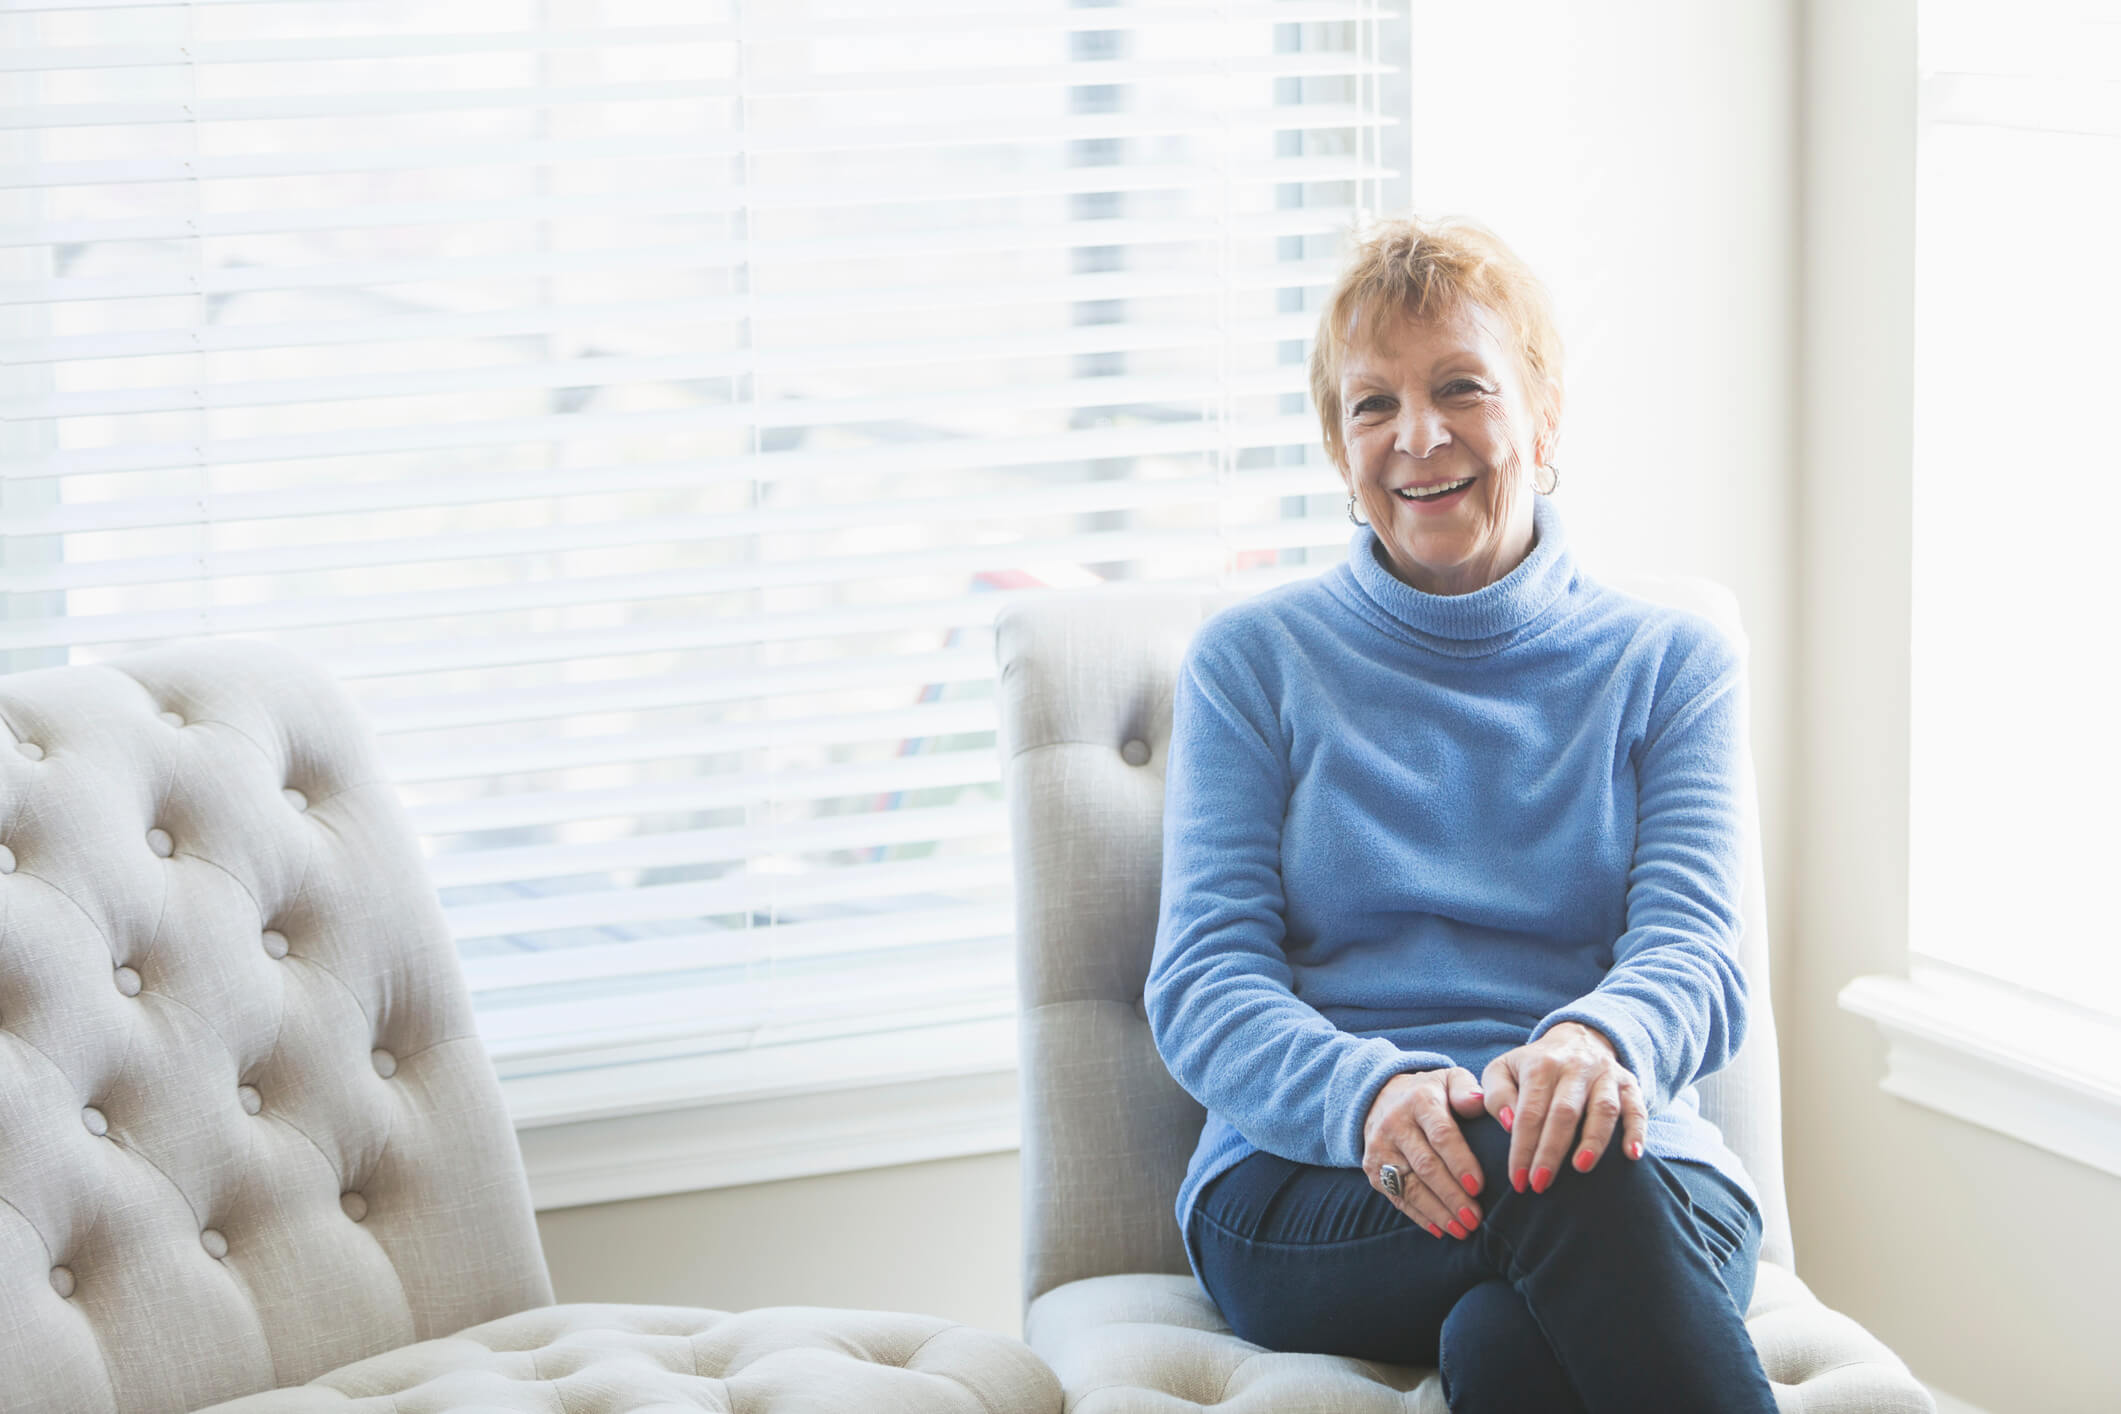 Staying Connected with Seniors When You Can't Visit Face to Face